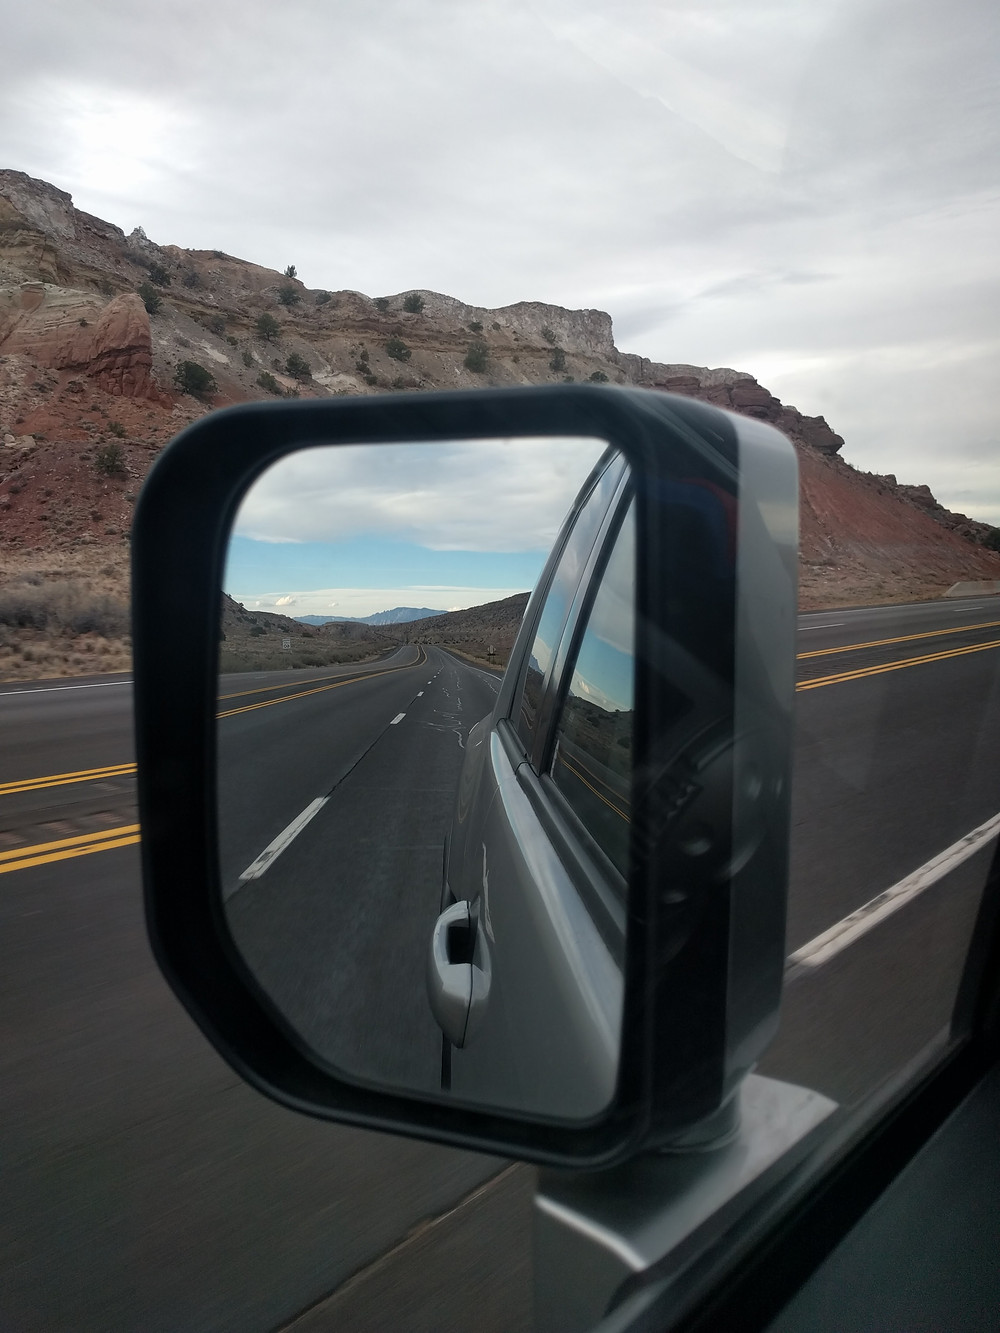 A view of the open road